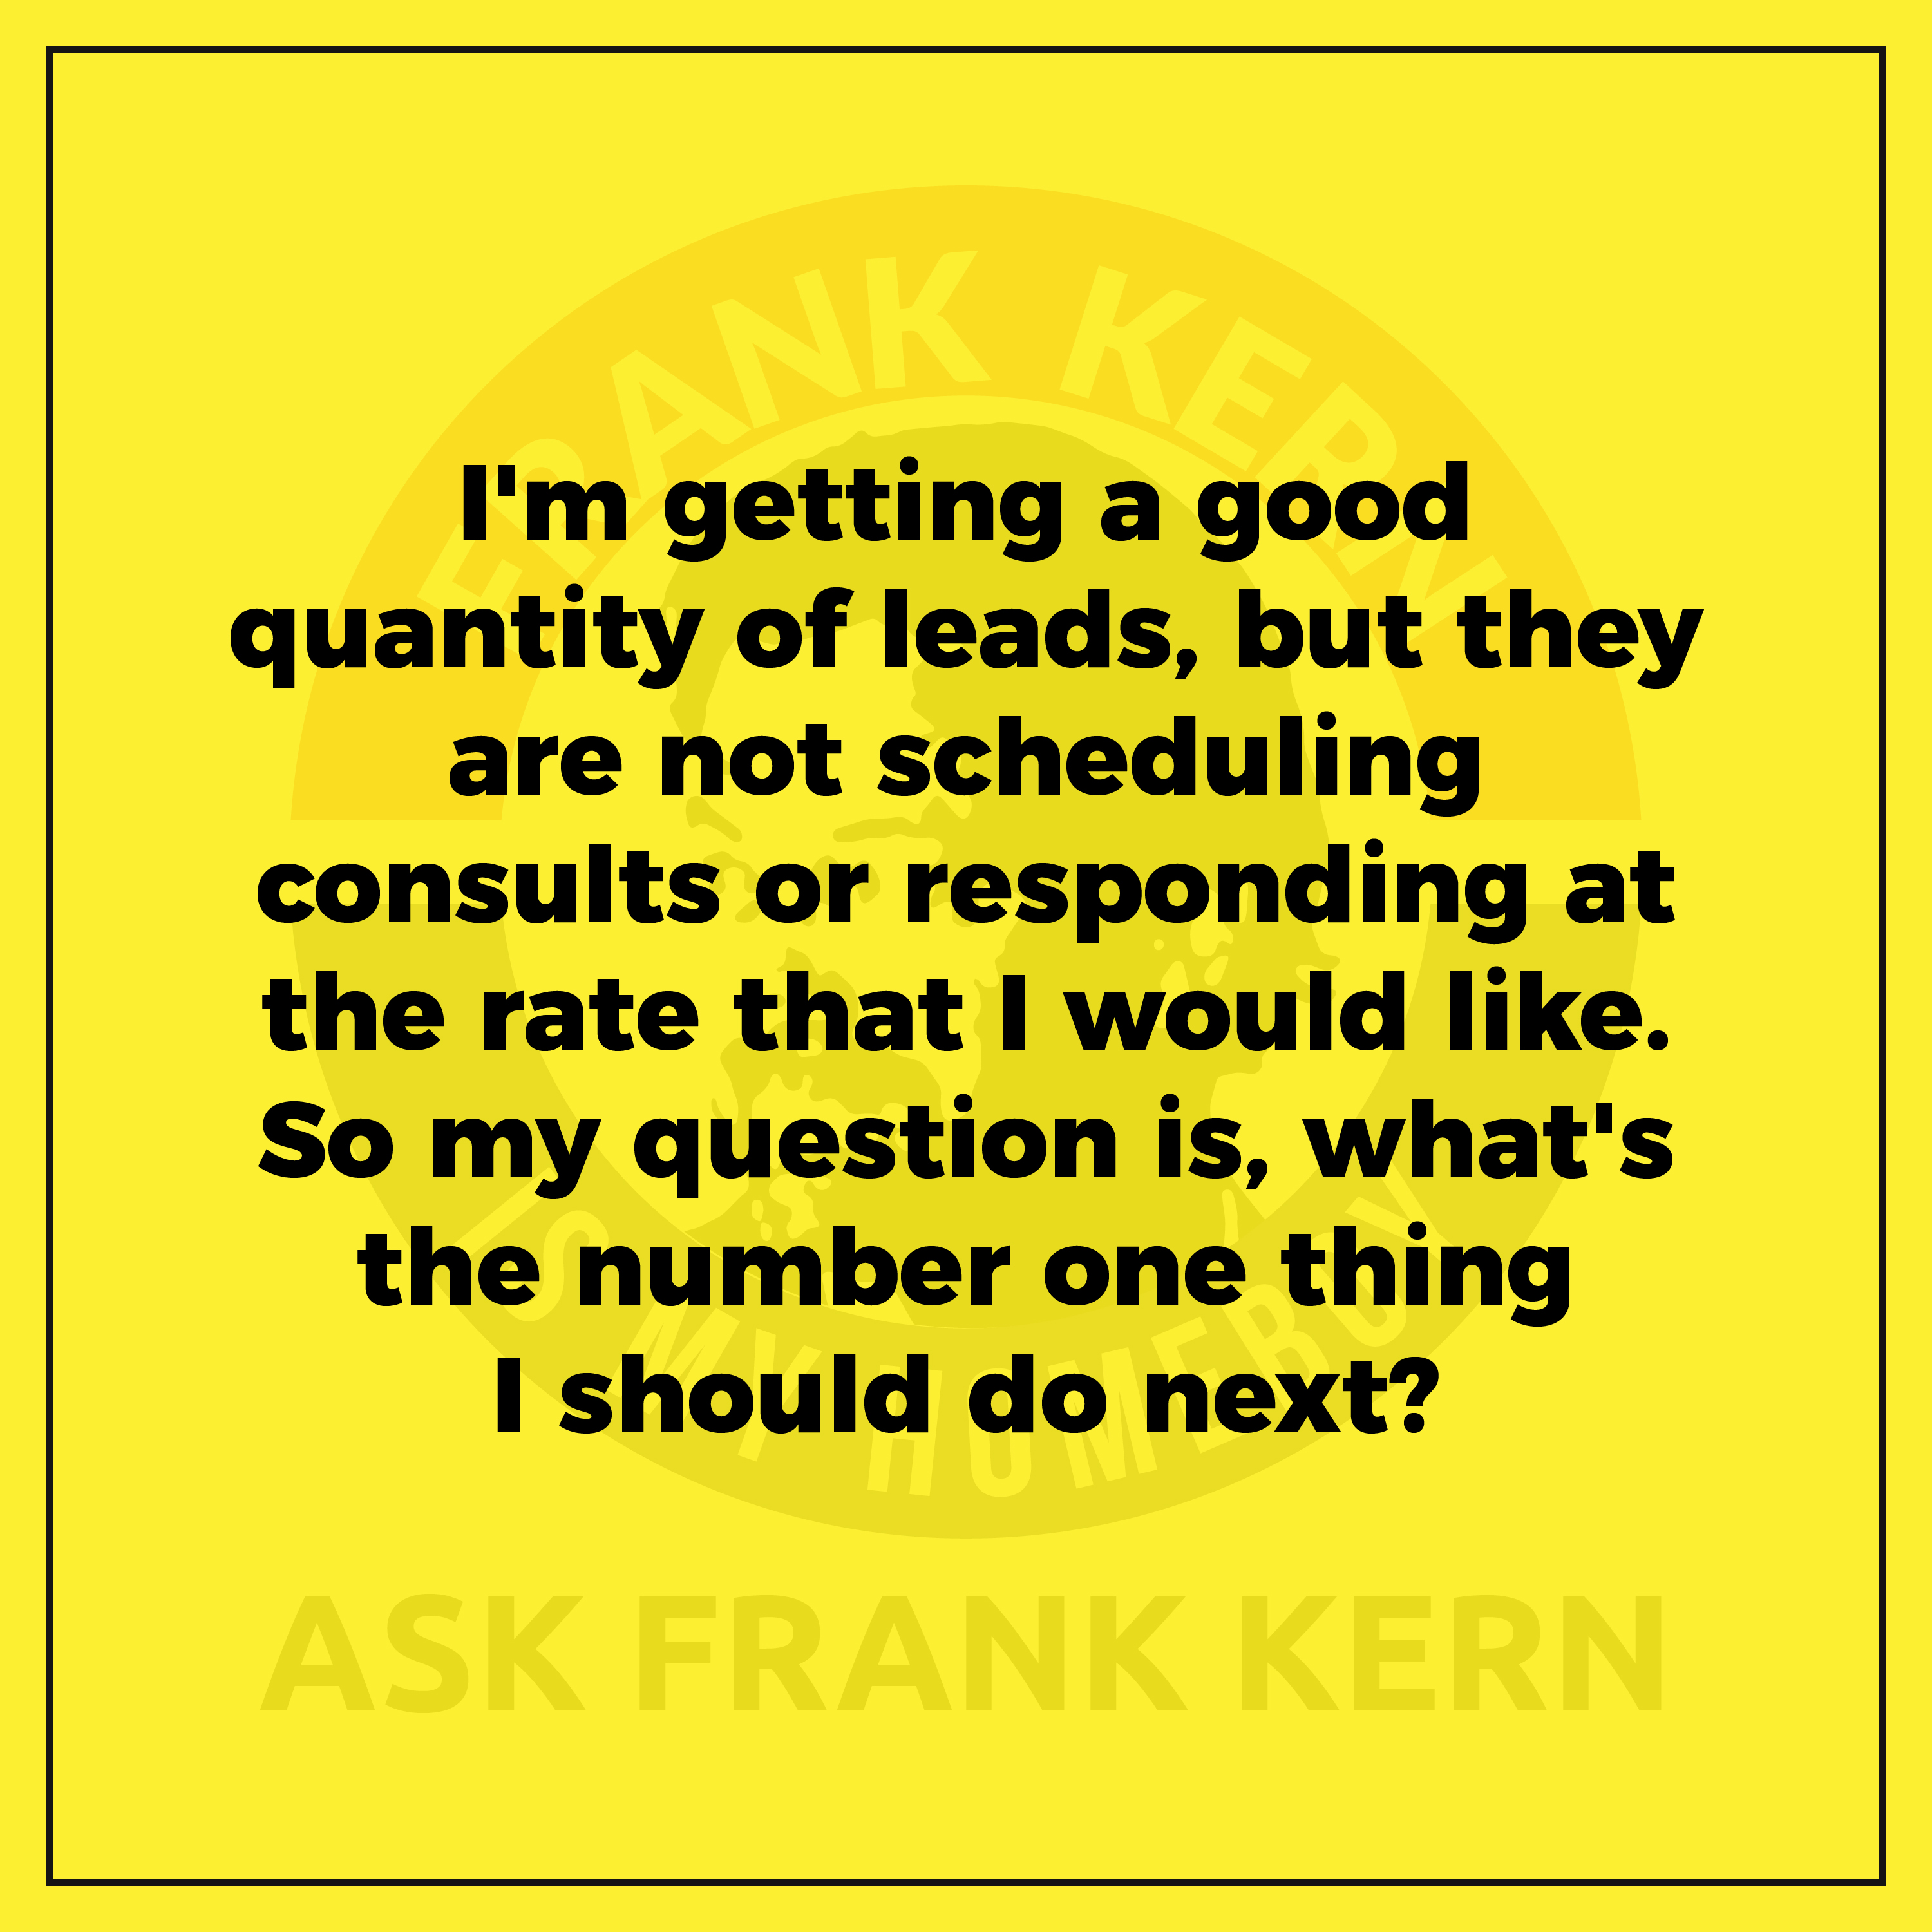 I'm getting a good quantity of leads, but they are not scheduling consults or responding at the rate that I would like. So my question is, what's the number one thing I should do next?